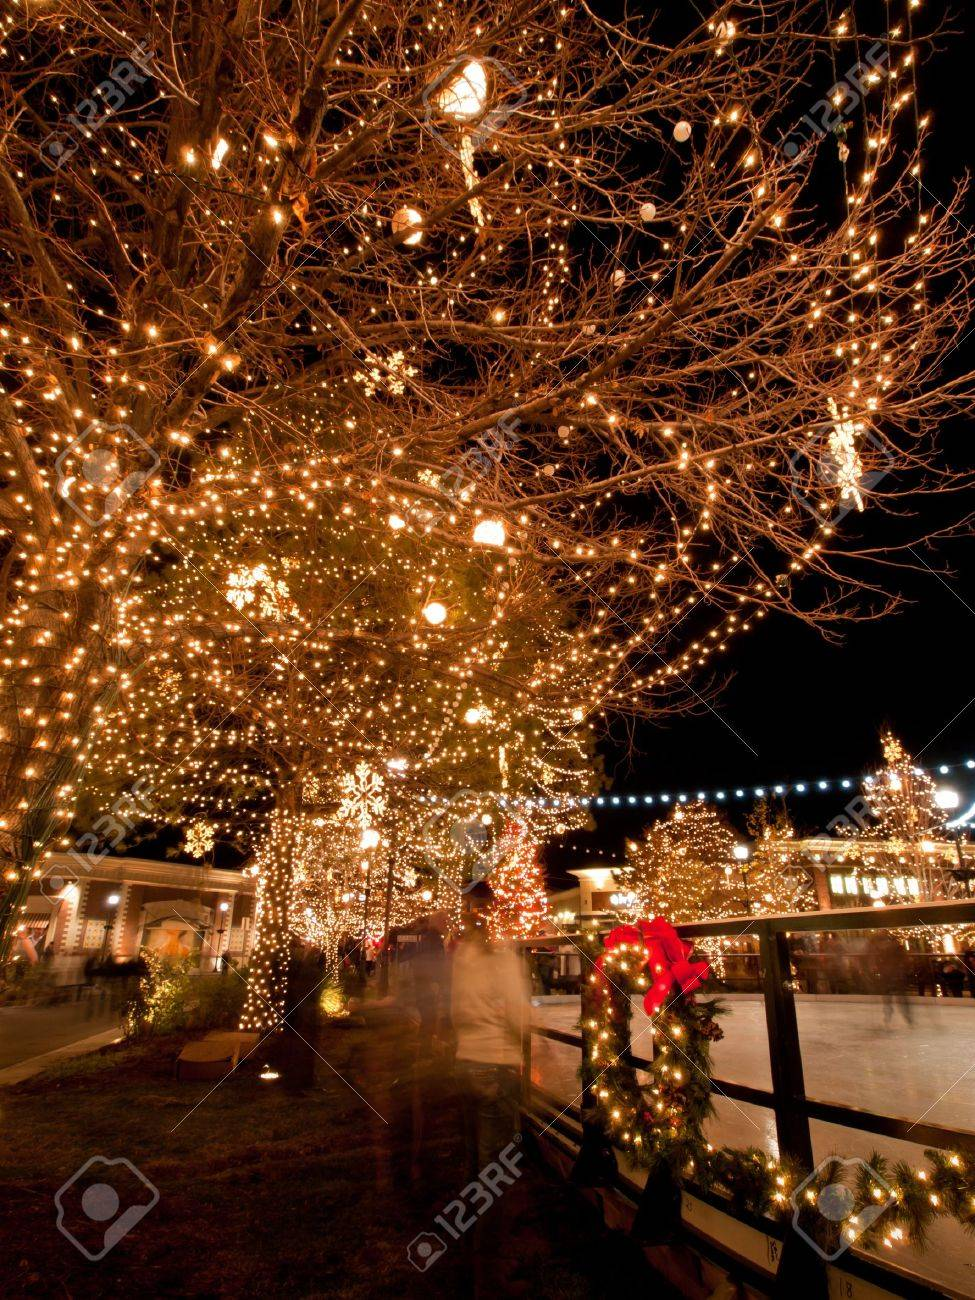 Christmas In Denver Colorado.3rd Annual Christmas Tree Lighting At The Streets Of Southglenn